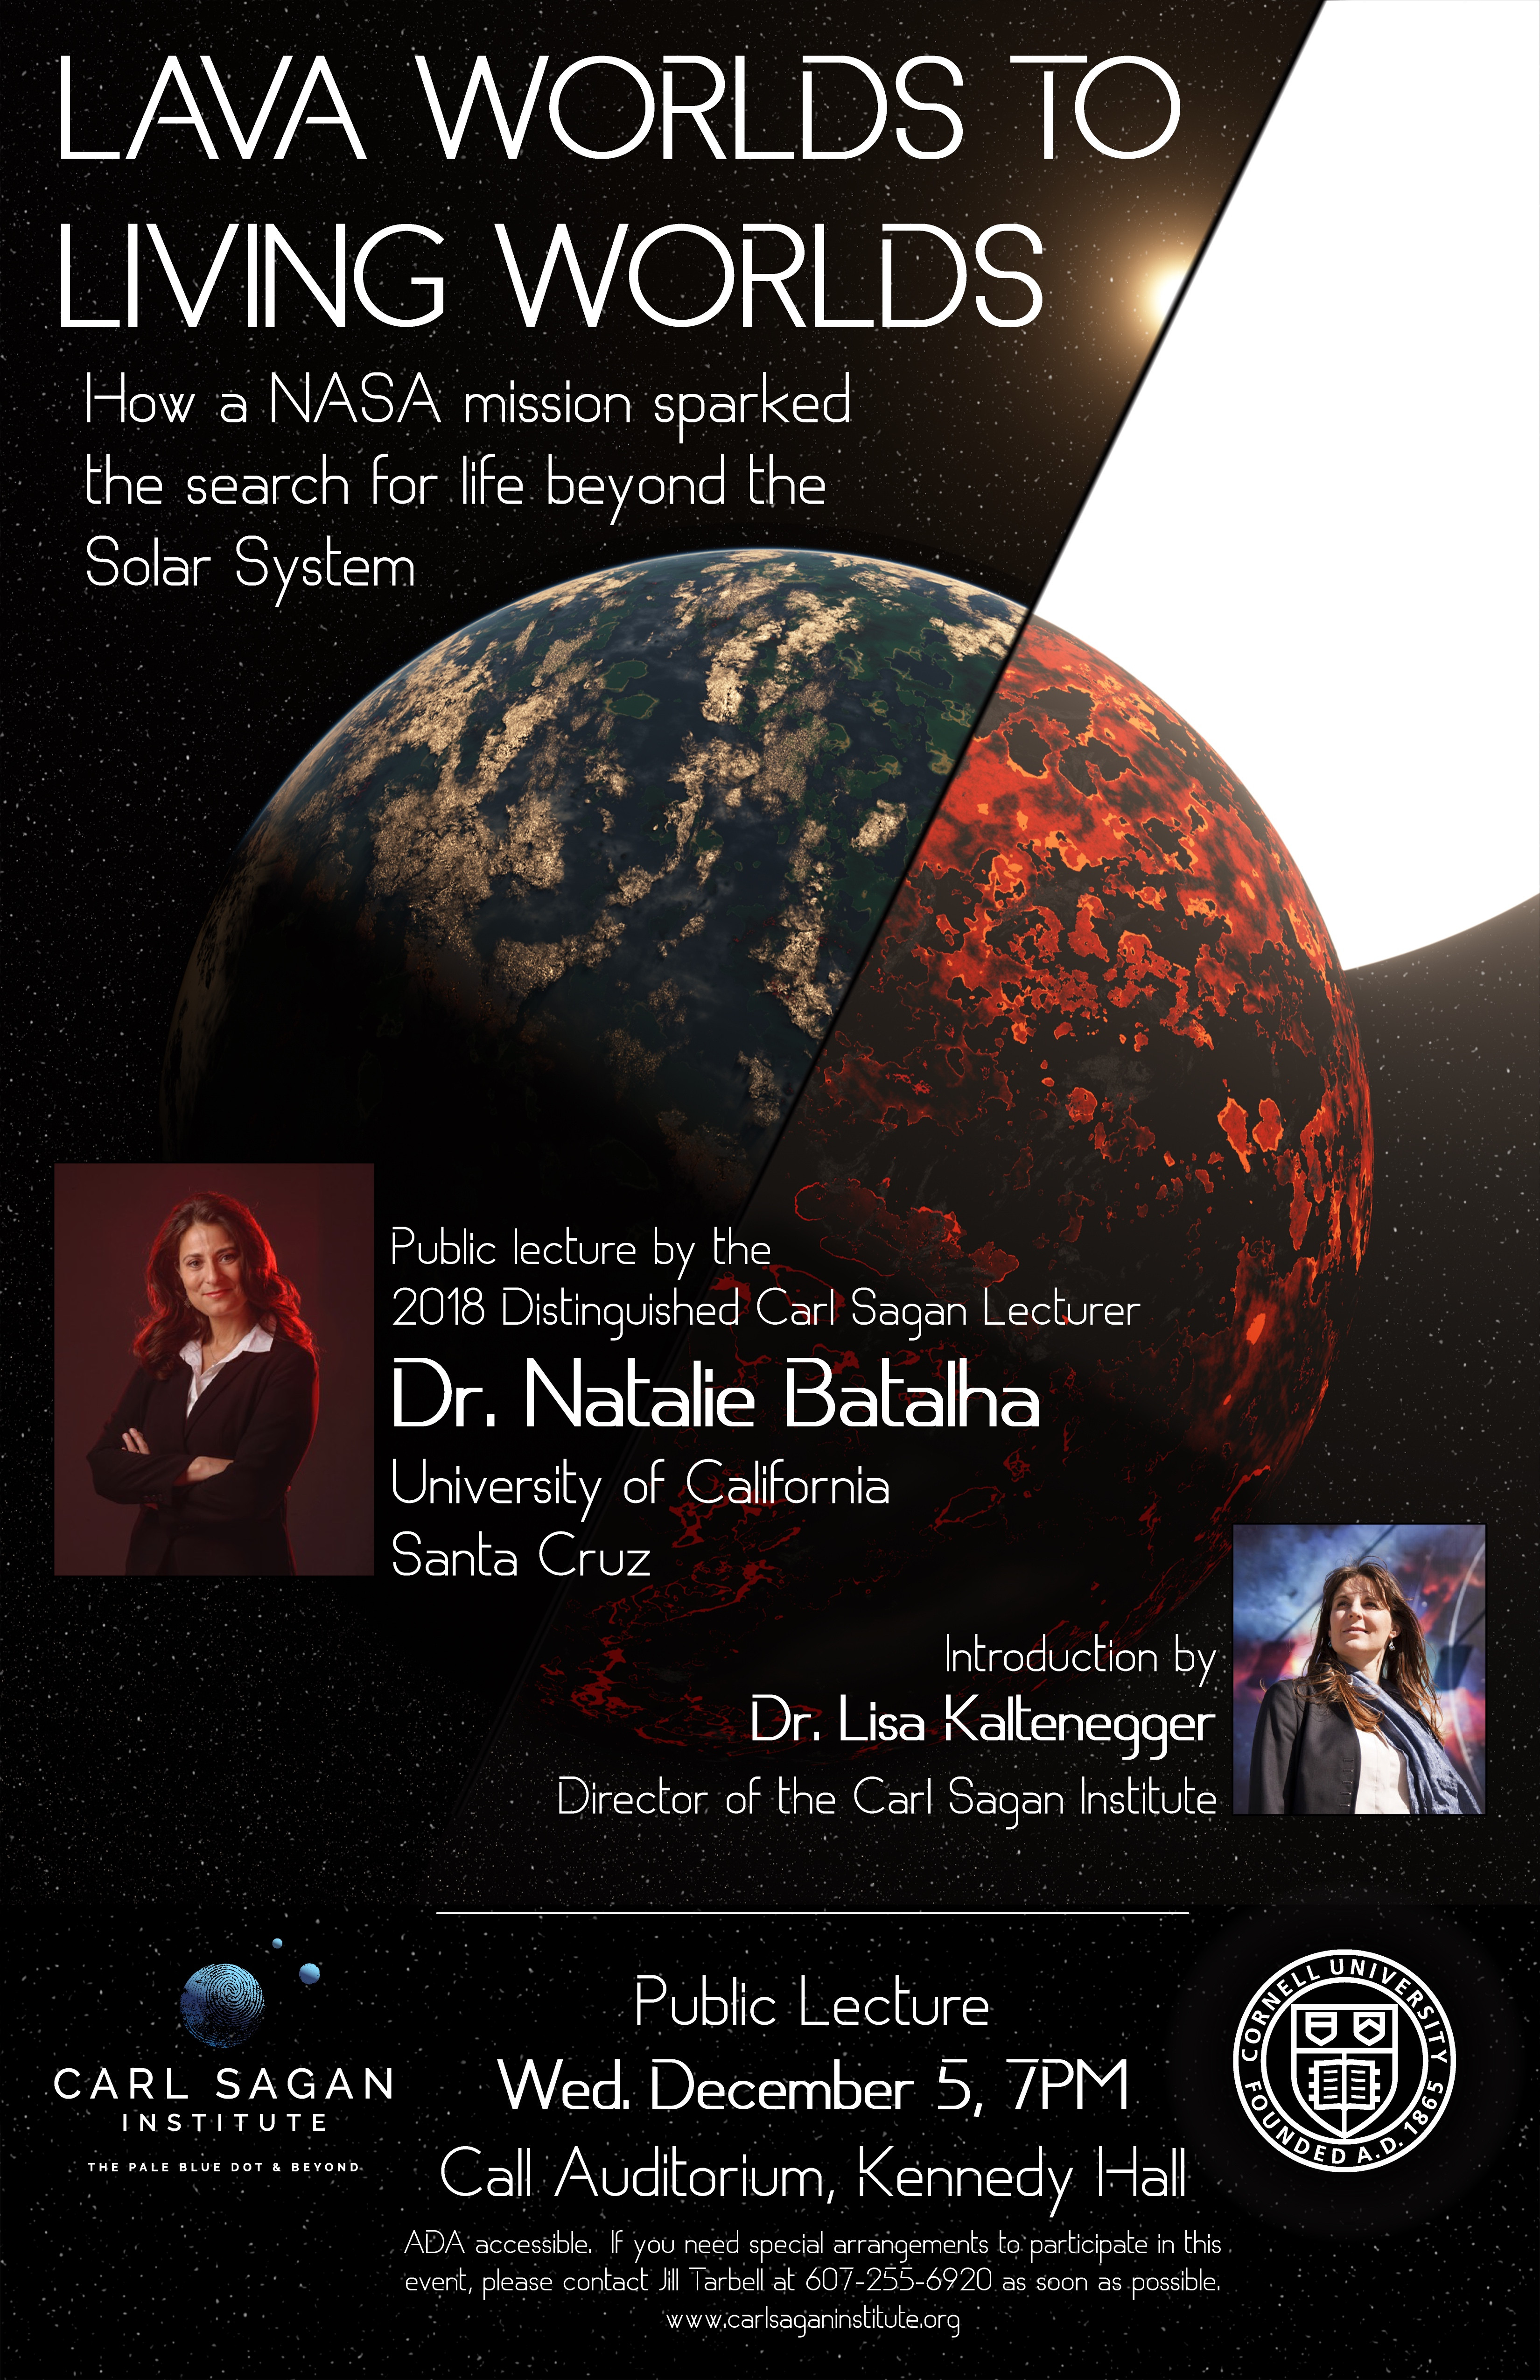 Poster for 'Lava Worlds to Living Worlds', a public talk by Dr. Natalie Batalha